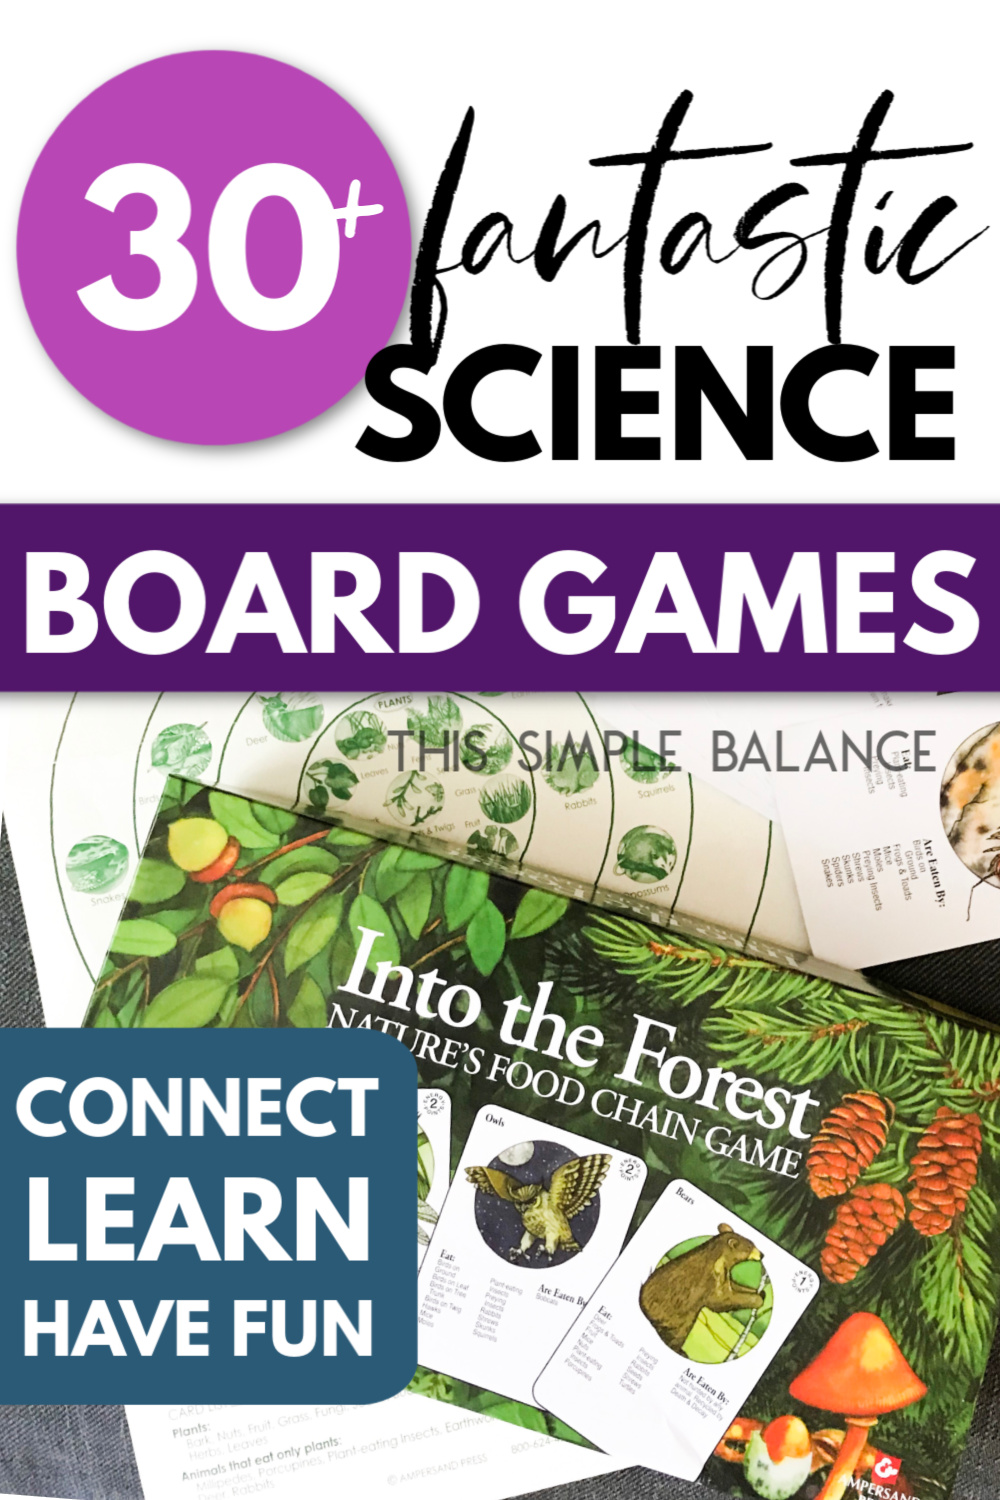 33 Science Board Games for Kids (Organized by Age Level